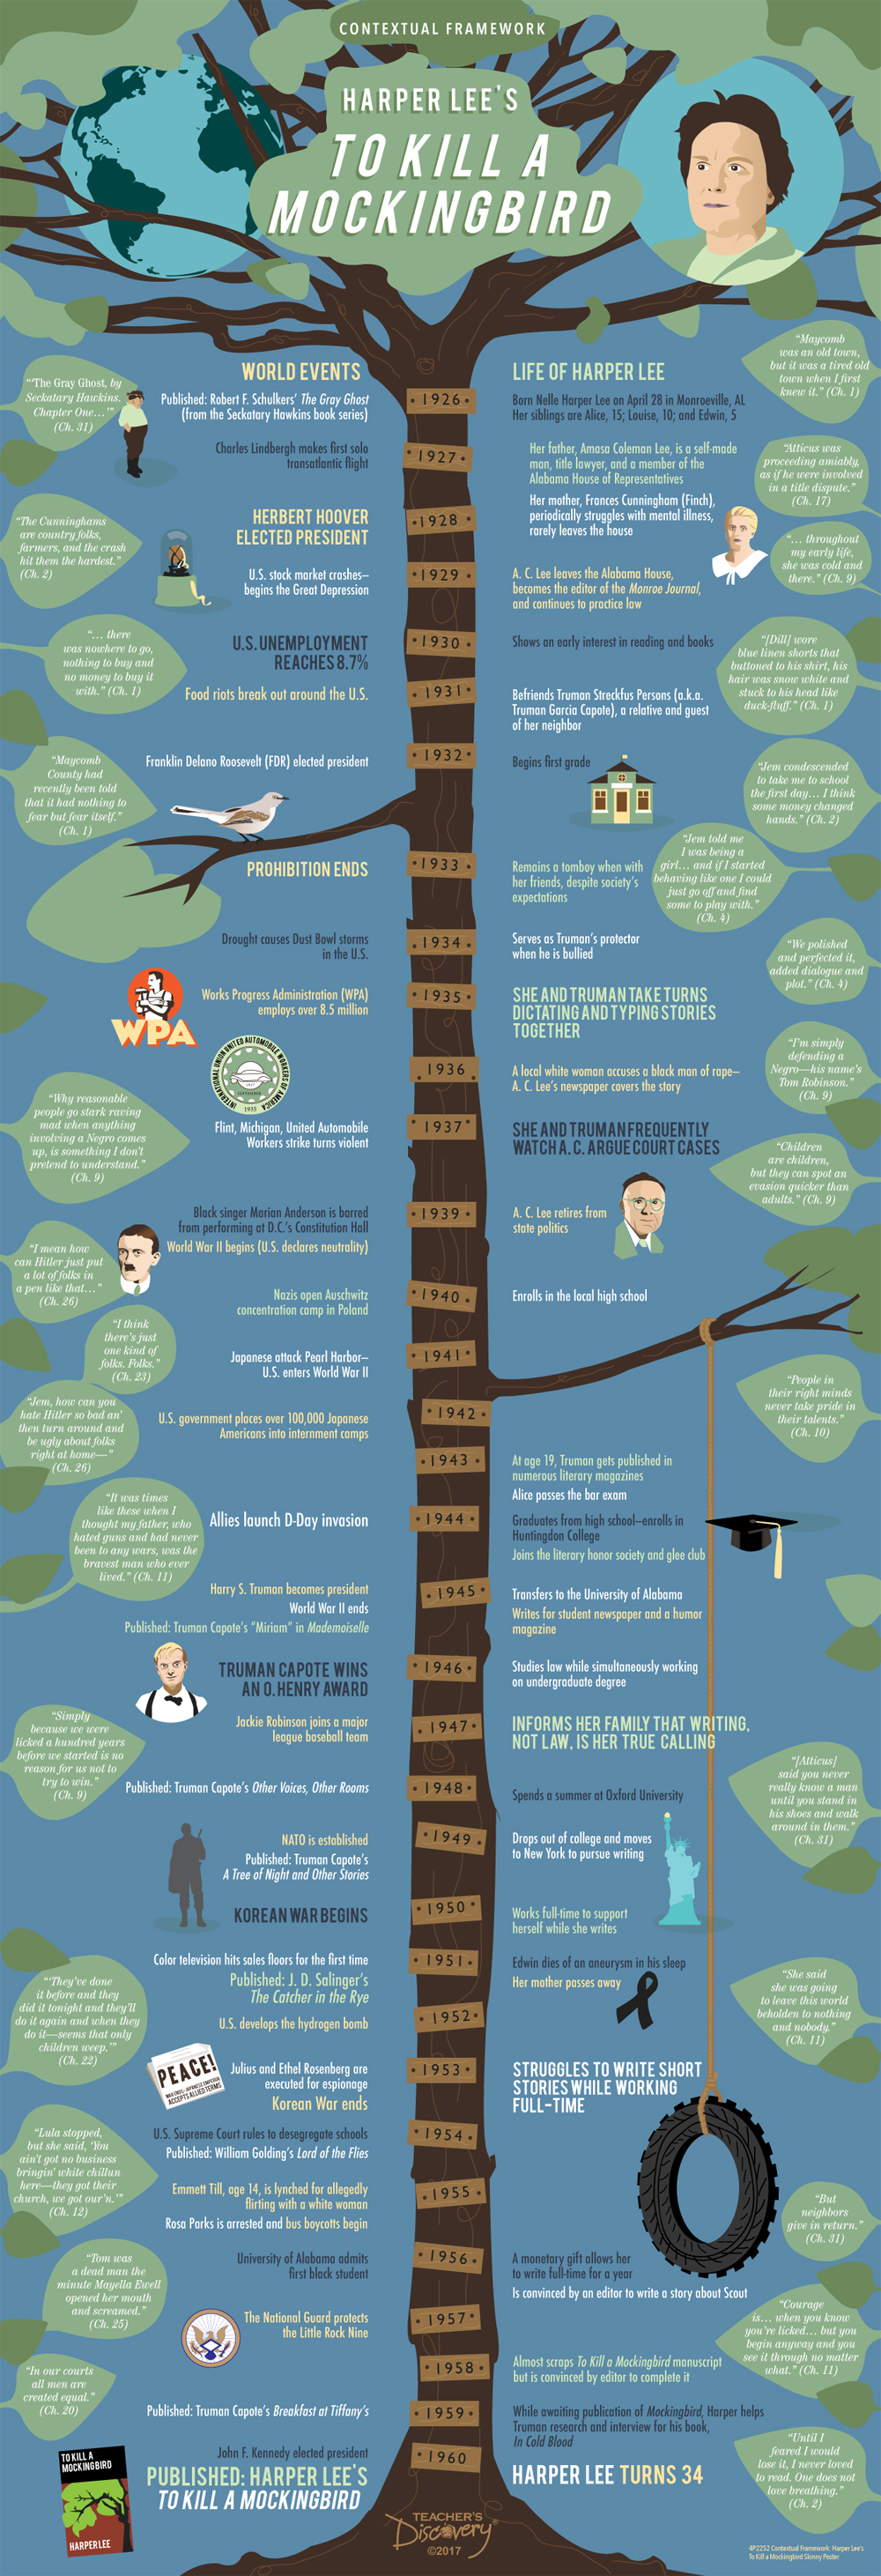 Contextual Framework: Harper Lee's To Kill a Mockingbird Skinny Poster